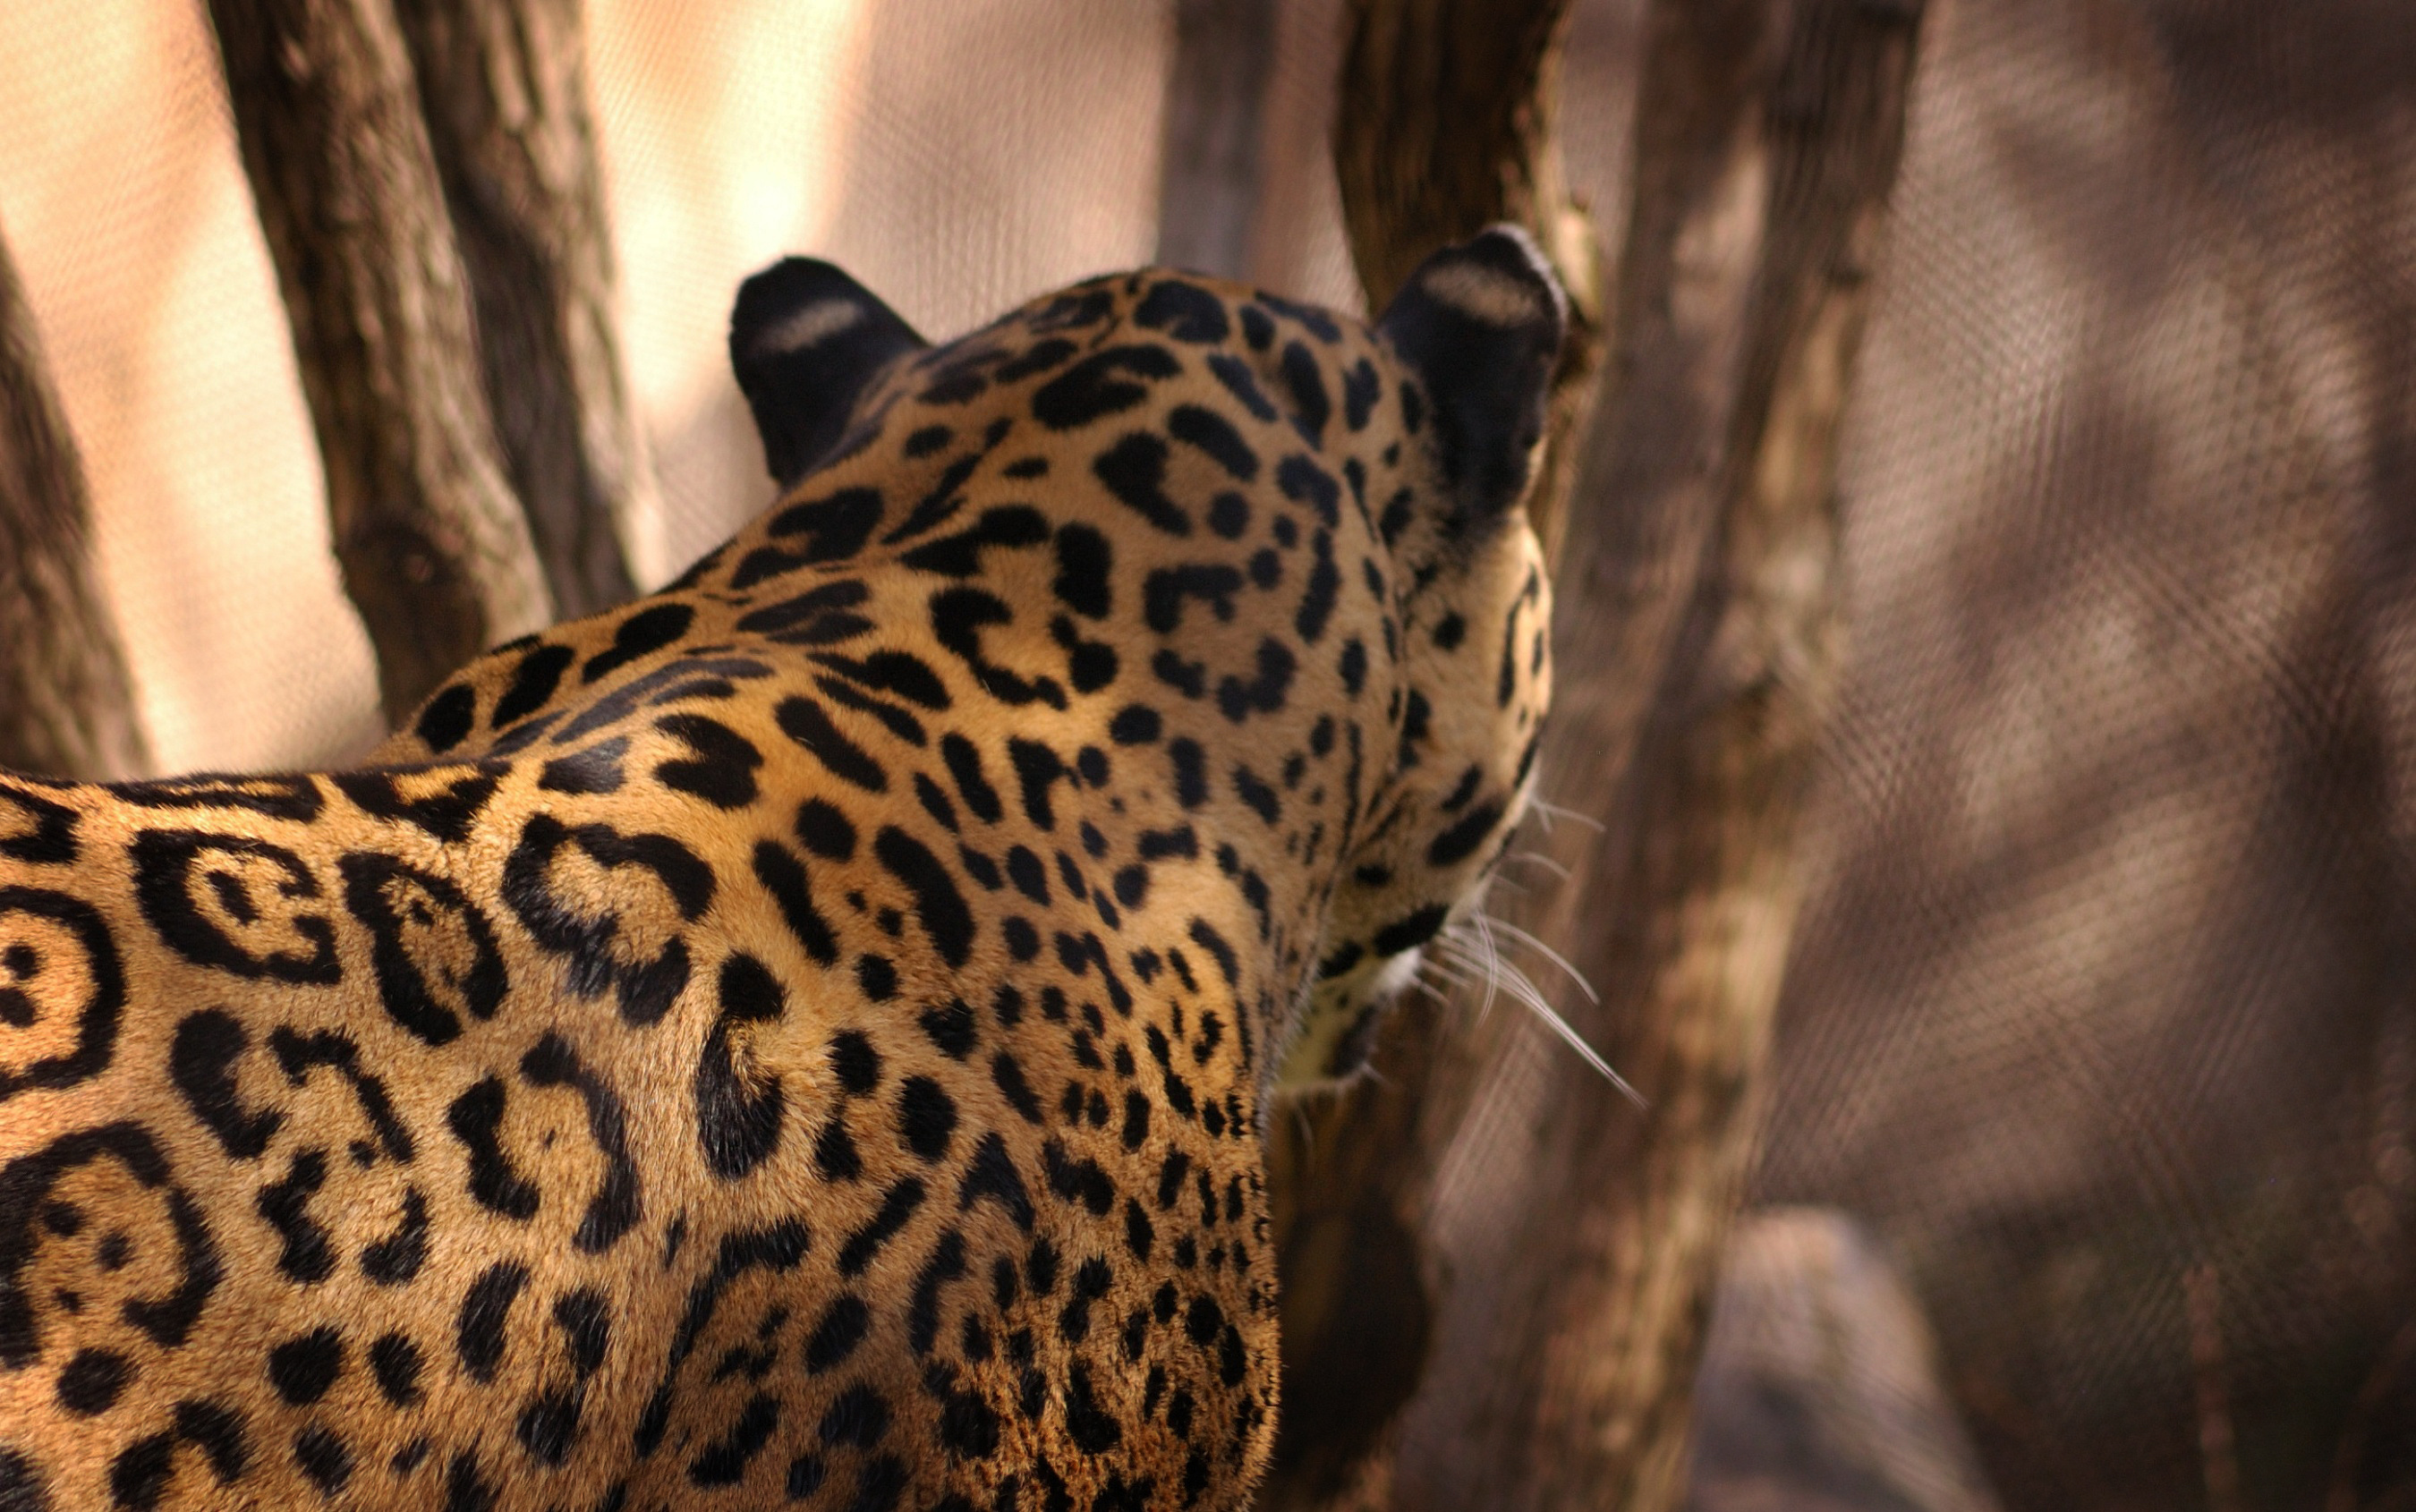 Jaguar hd wallpaper background image 2700x1690 id - Jaguar animal hd wallpapers ...